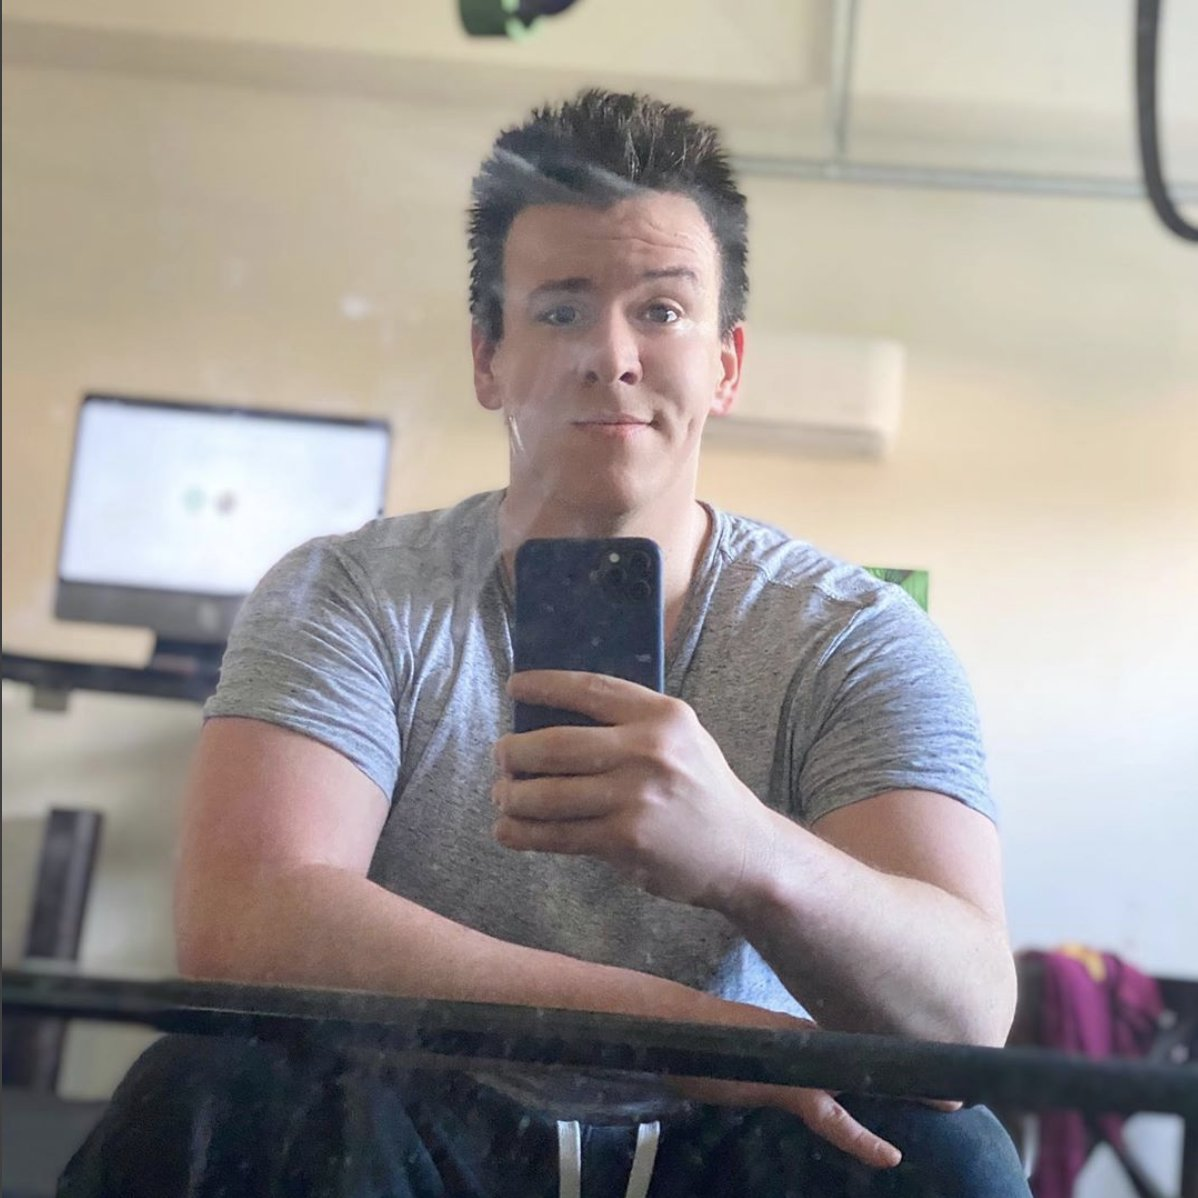 Philip Defranco On Twitter Sorry I Ve Been So Quiet On Twitter I Sent This Pic To My Wife And She Said It Has Divorced Dad Tinder Energy I Ve Been Recovering From This Burn He is a producer and writer, known for the philip defranco show (2006), the. philip defranco on twitter sorry i